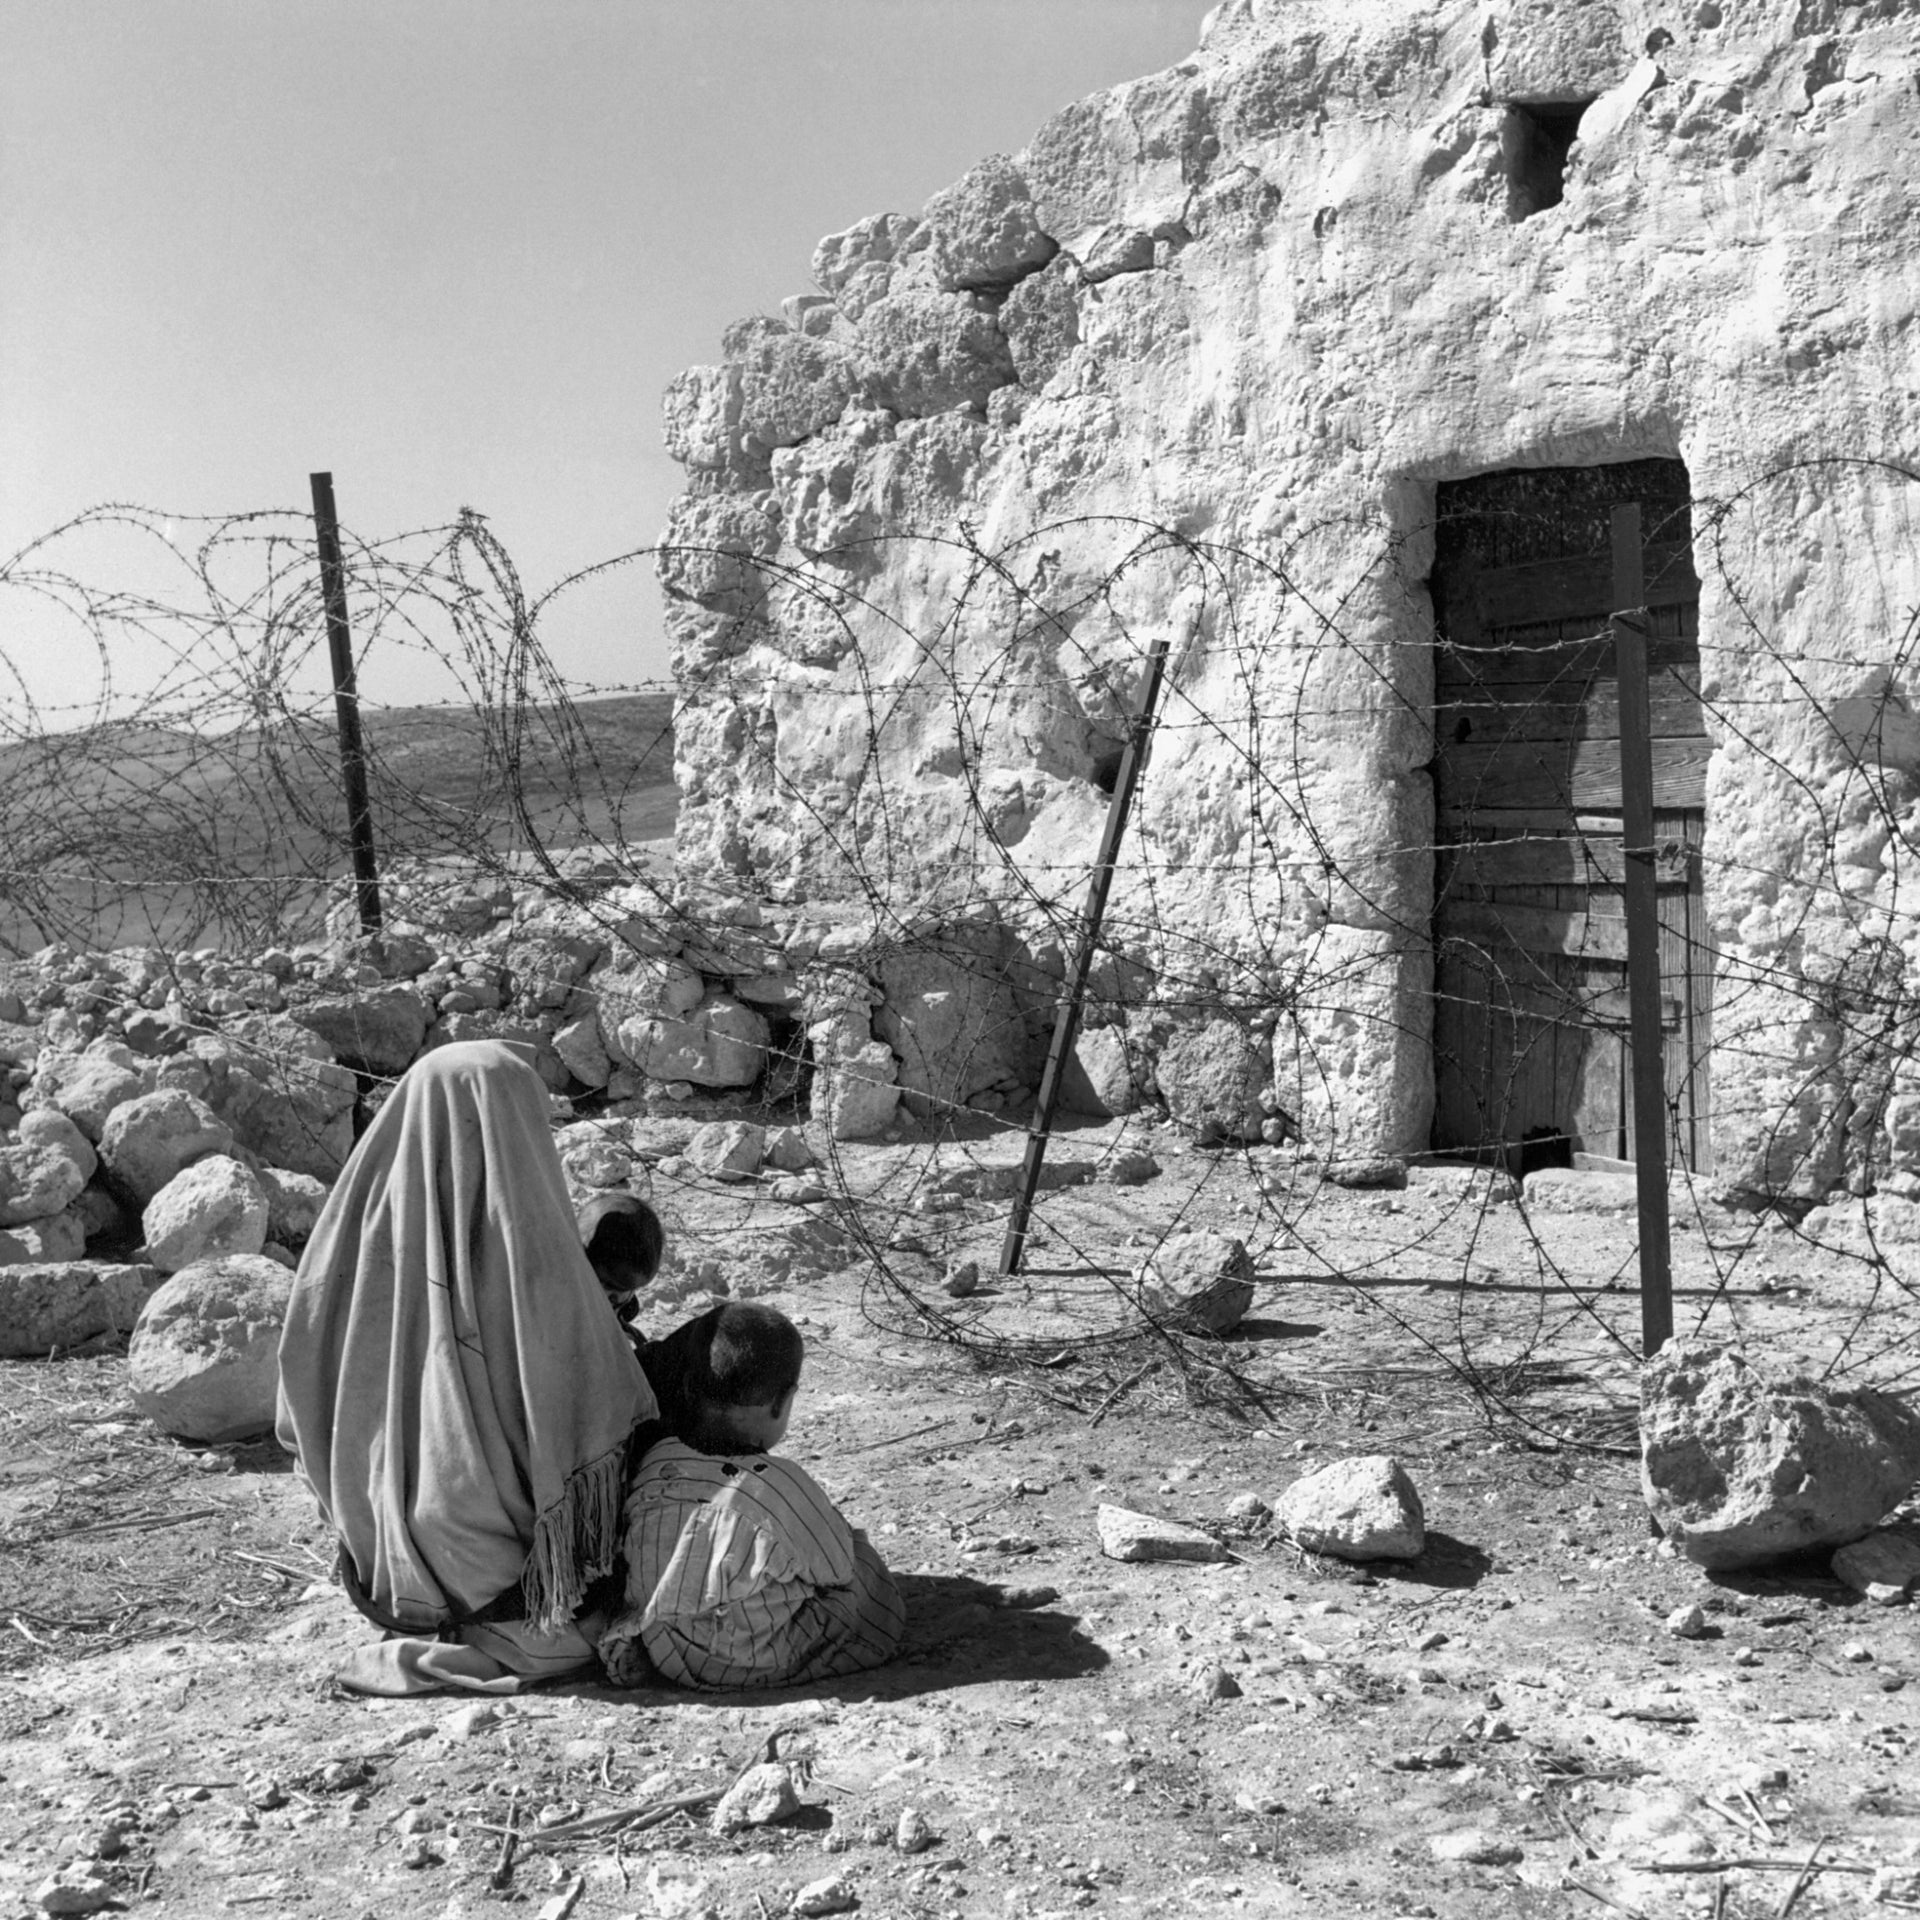 A Palestinian refugee cut off from her home by the 1949 Armistice Line (Green Line), which was established after the Arab-Israeli war in 1948.